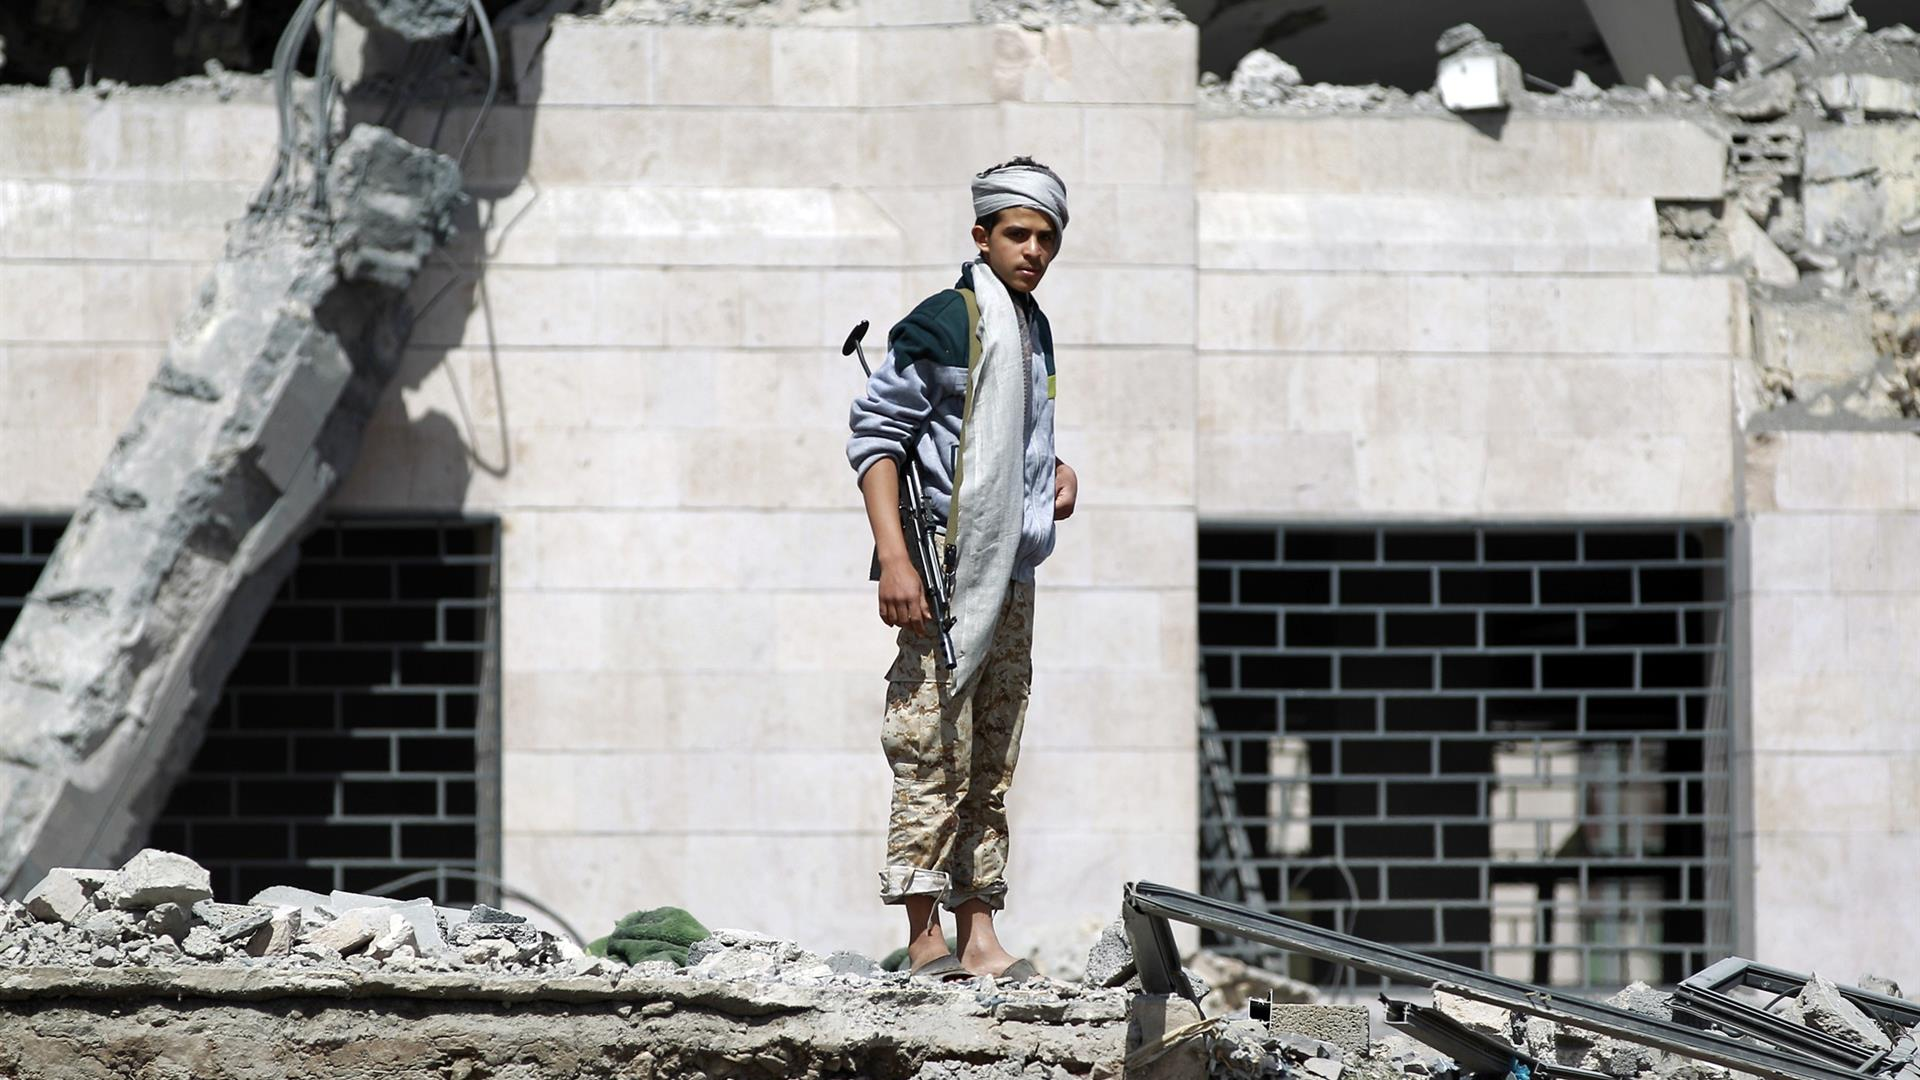 Bombe Yemen MOHAMMED HUWAIS:AFP:Getty Images